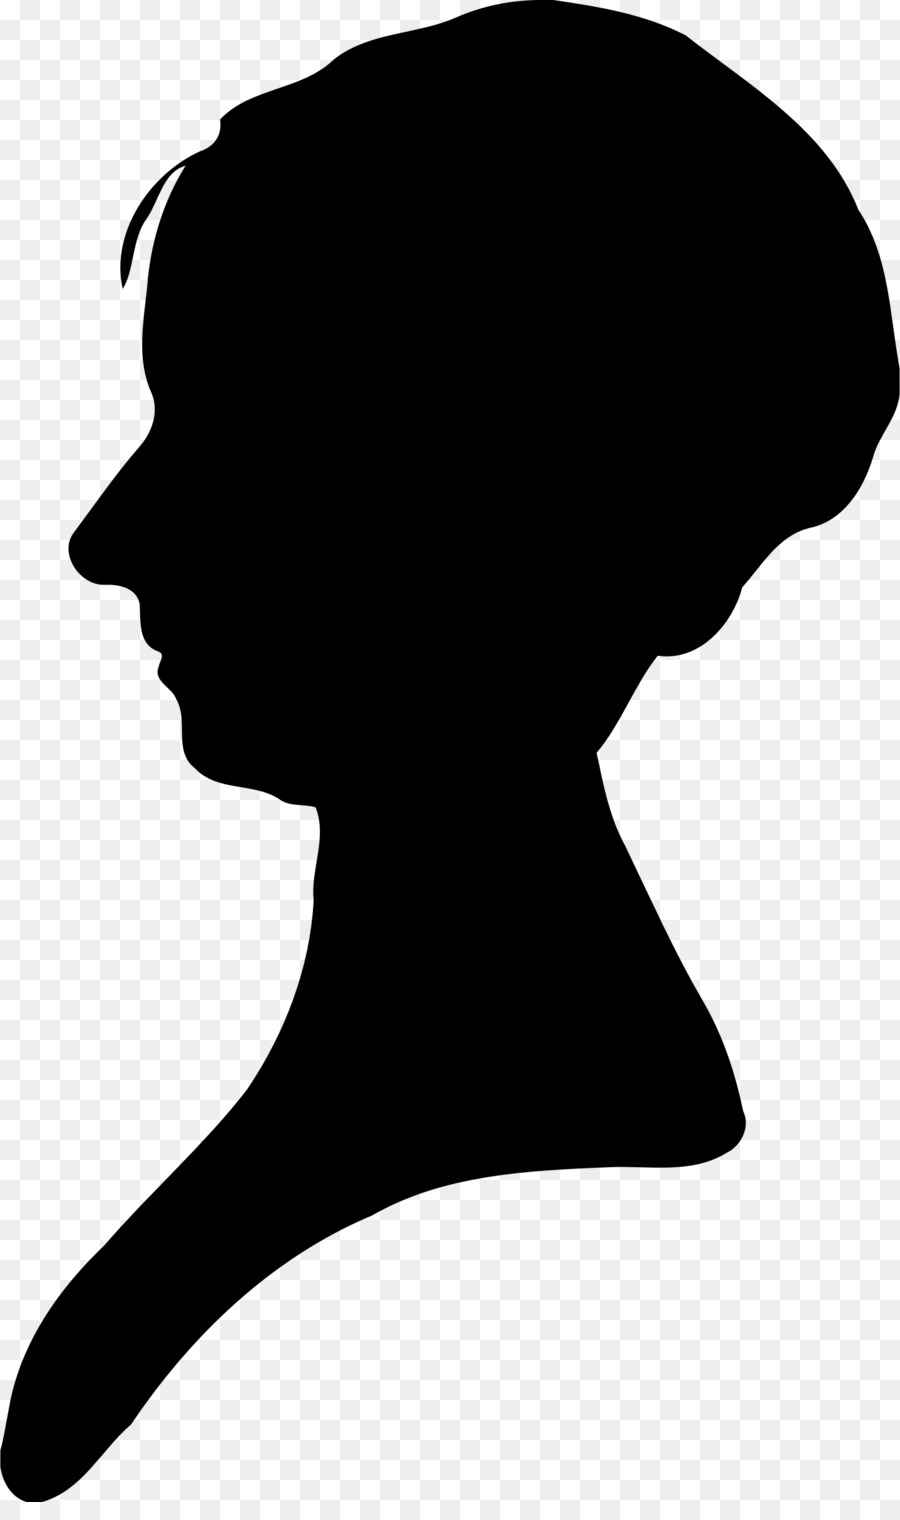 890 s clipart image library download Human head Clip art - woman png download - 890*981 - Free ... image library download